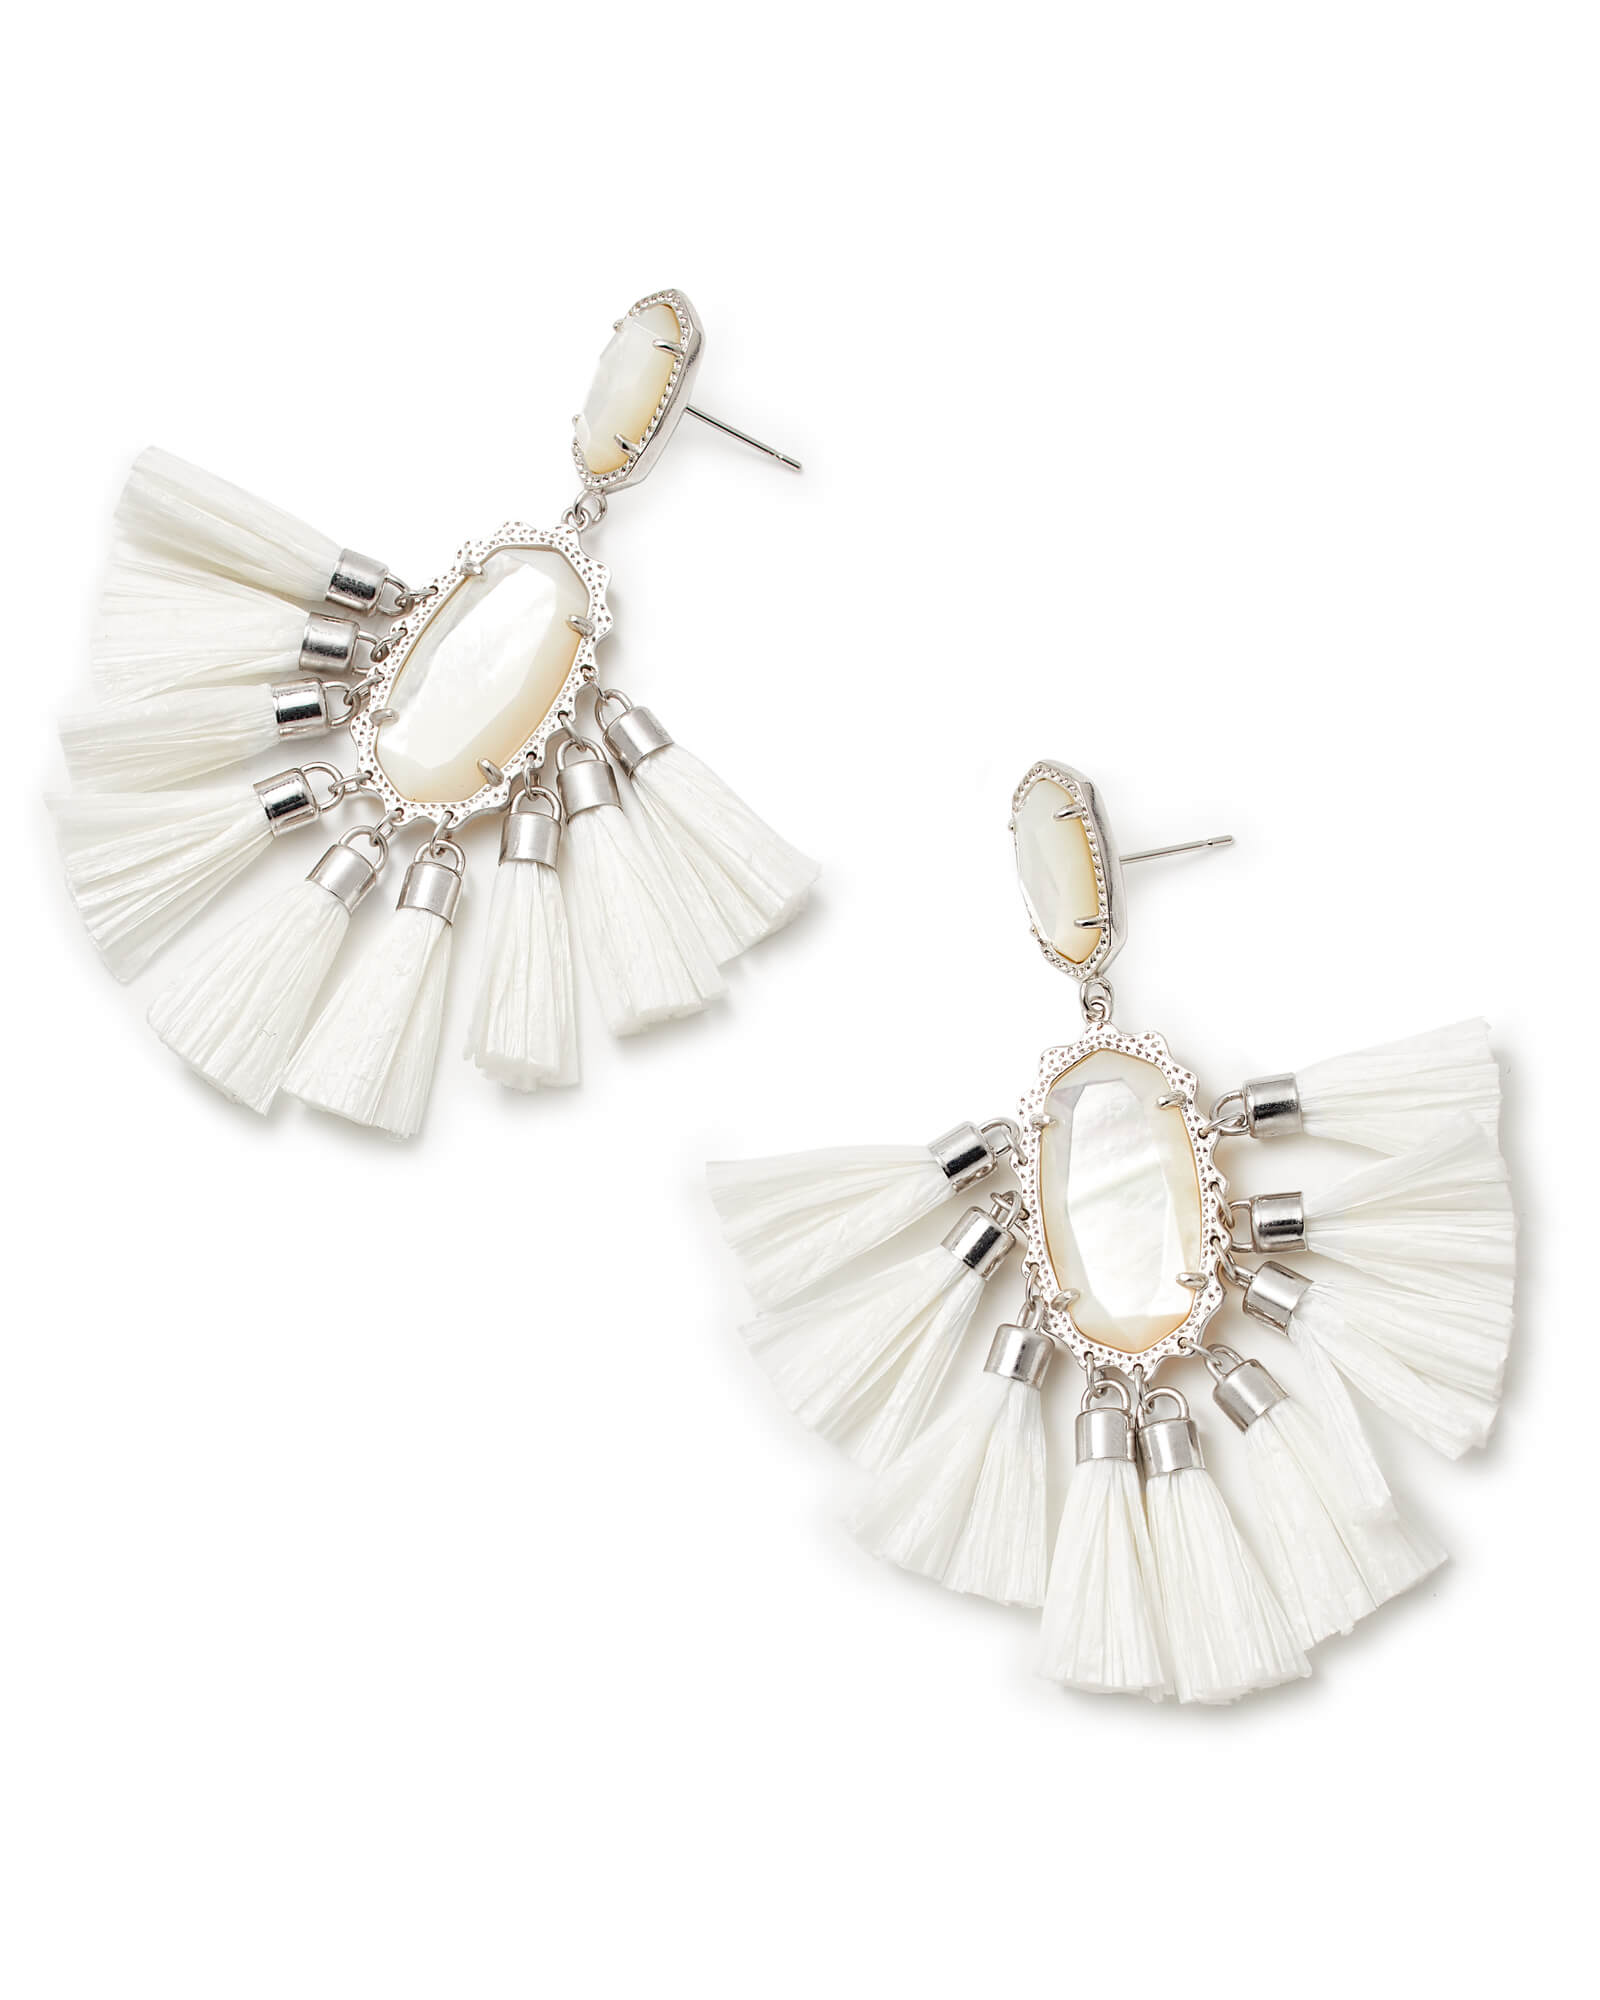 Kristen Silver Statement Earrings In Ivory Mother of Pearl